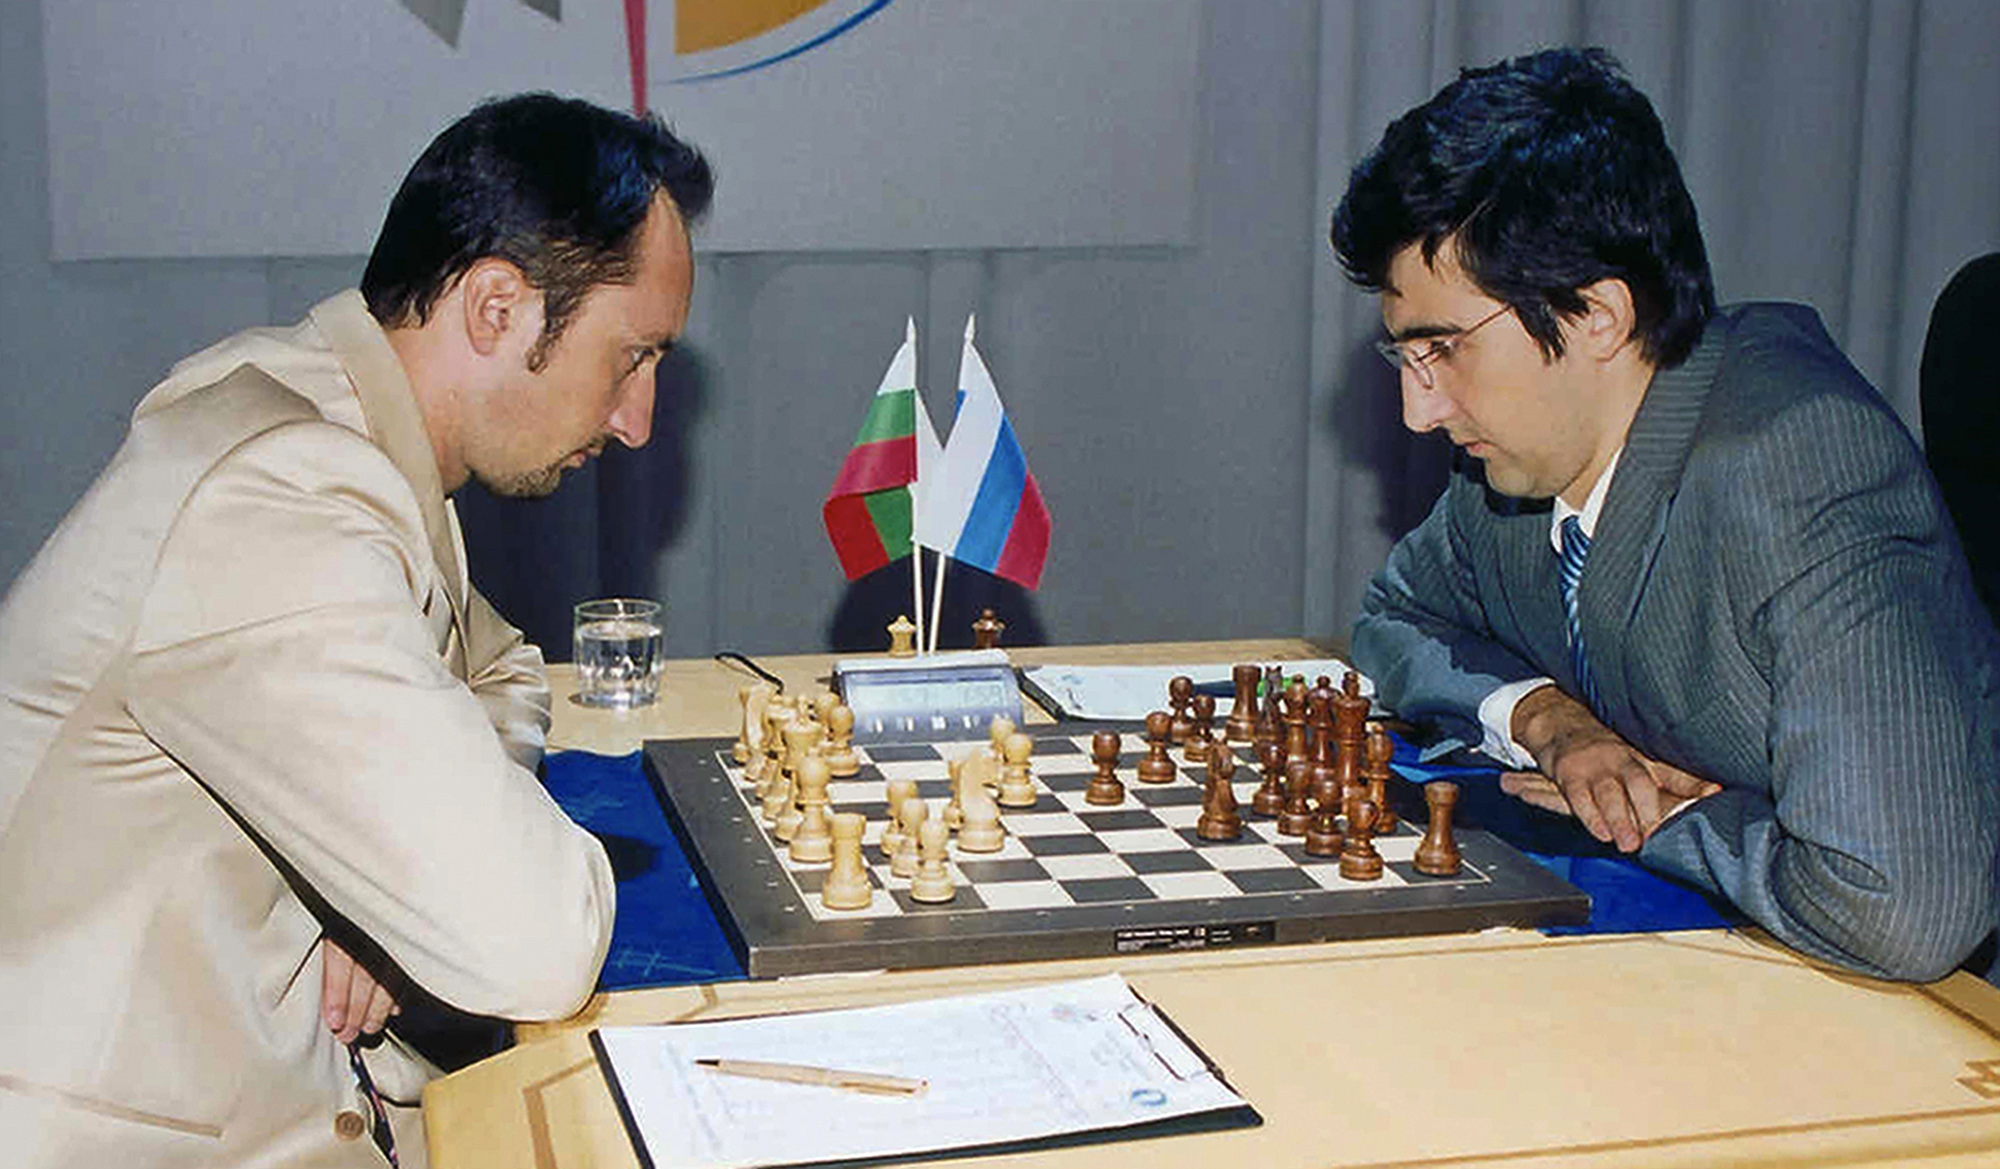 Classical World Champion Vladimir Kramnik, right, and World Chess Champion Veselin Topalov, left, seen during the match in Elista, capital of Kalmykia, southern Russia, Wednesday, Oct. 4, 2006.